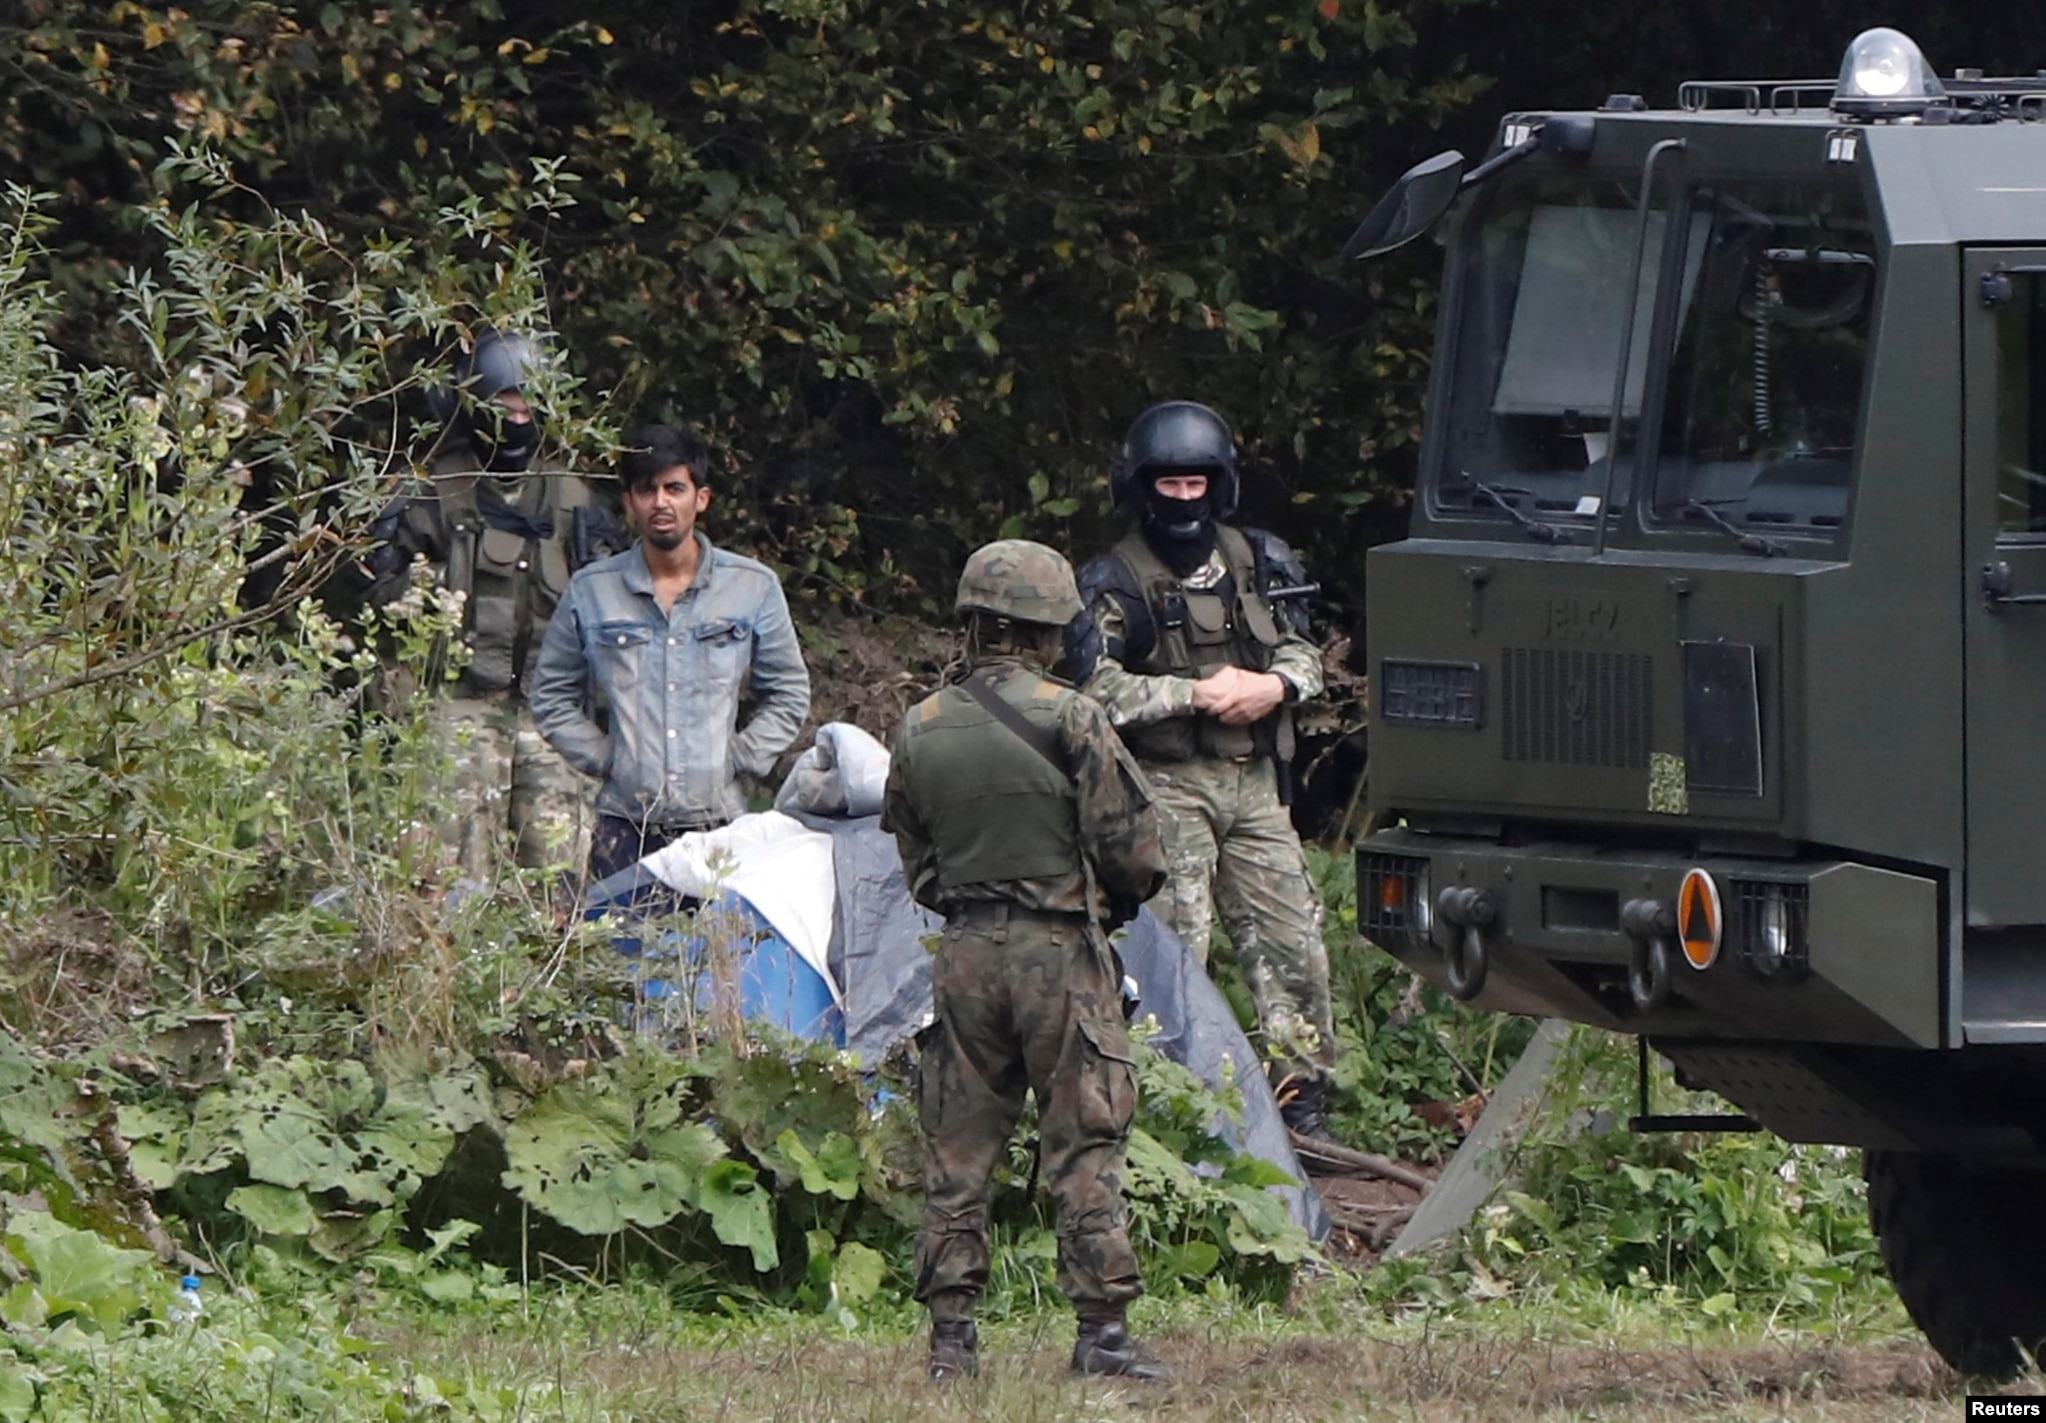 A migrant on the border with Belarus on August 23. The man is part of a group of migrants claiming to be from Afghanistan caught in a bizarre standoff between Polish and Belarusian border guards.